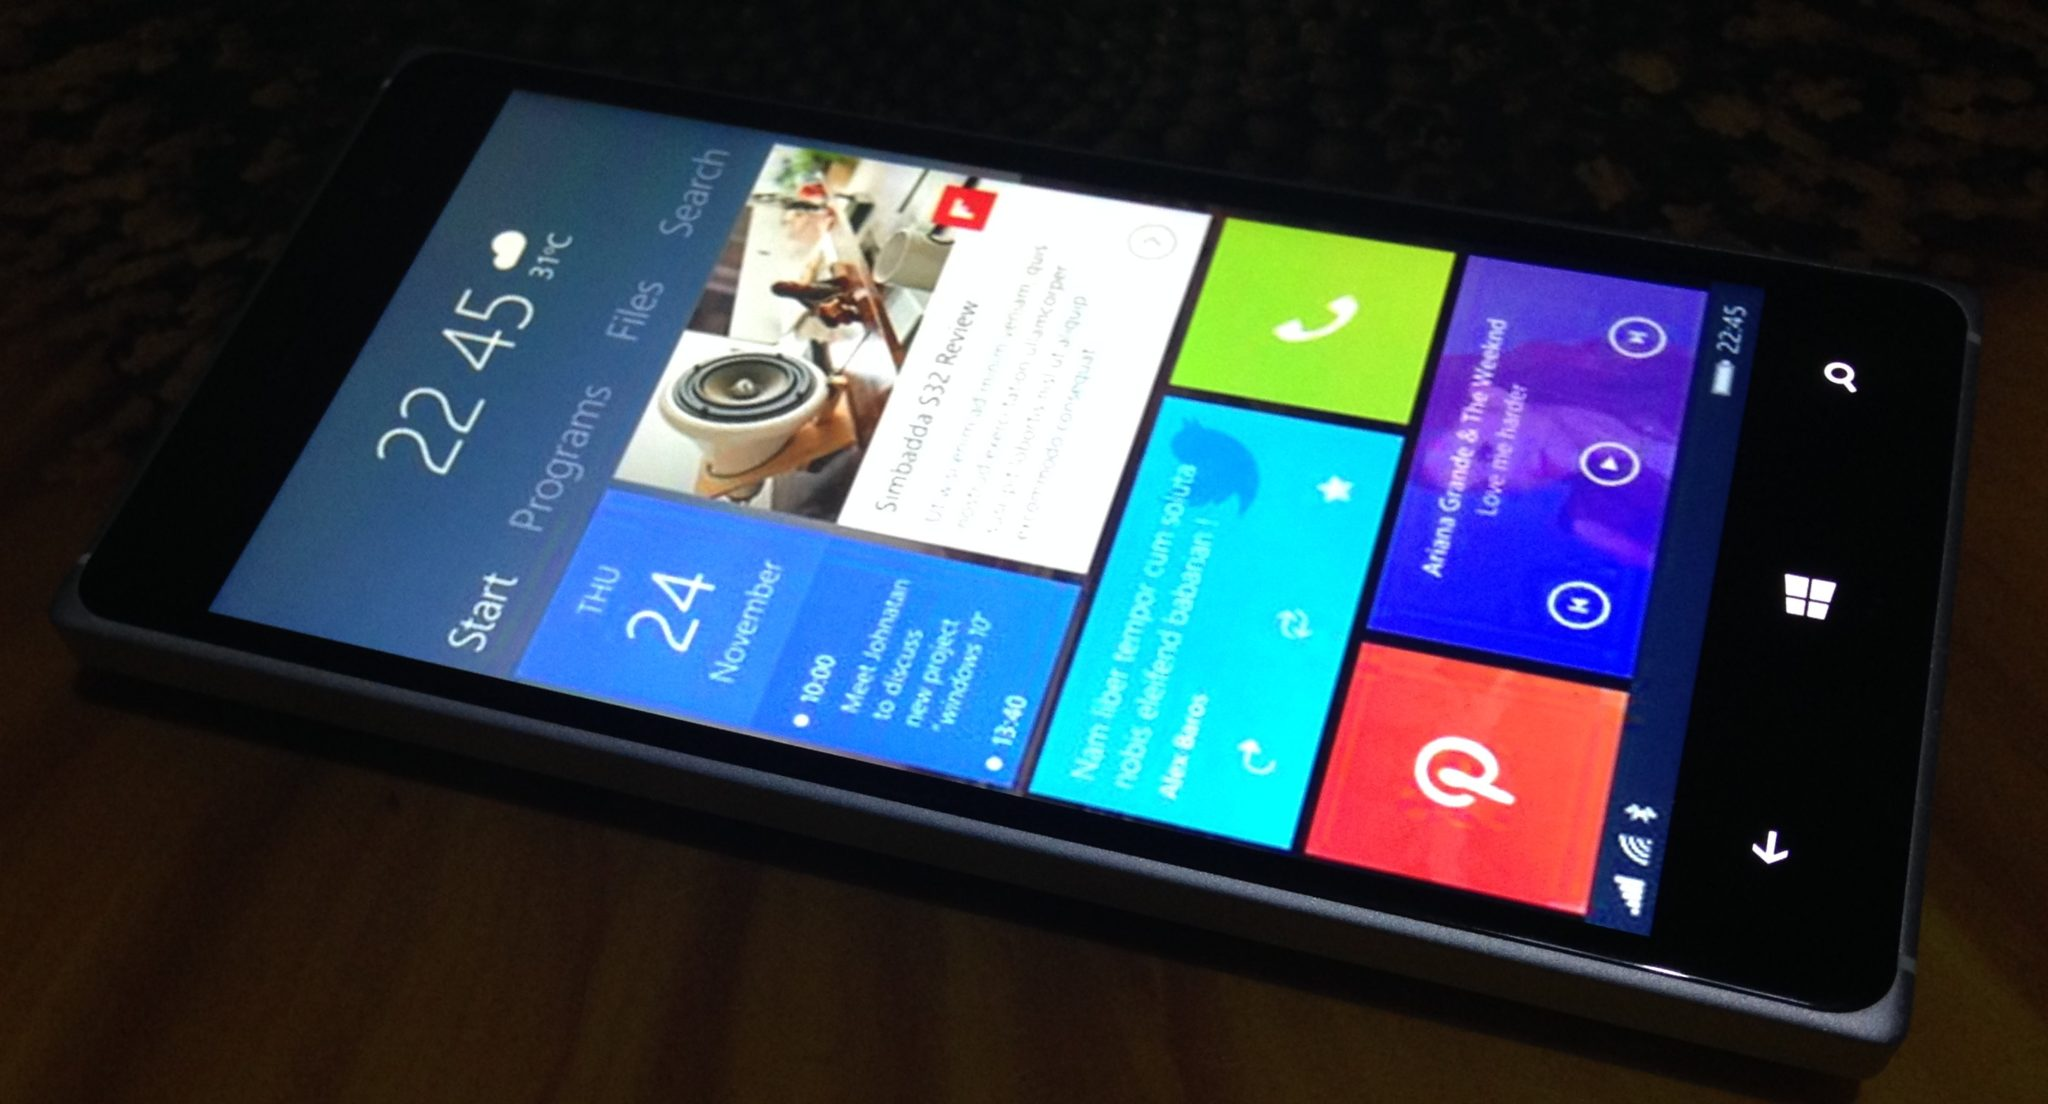 Microsoft slams final nail into Windows Phone 7.5 and 8.0's coffin